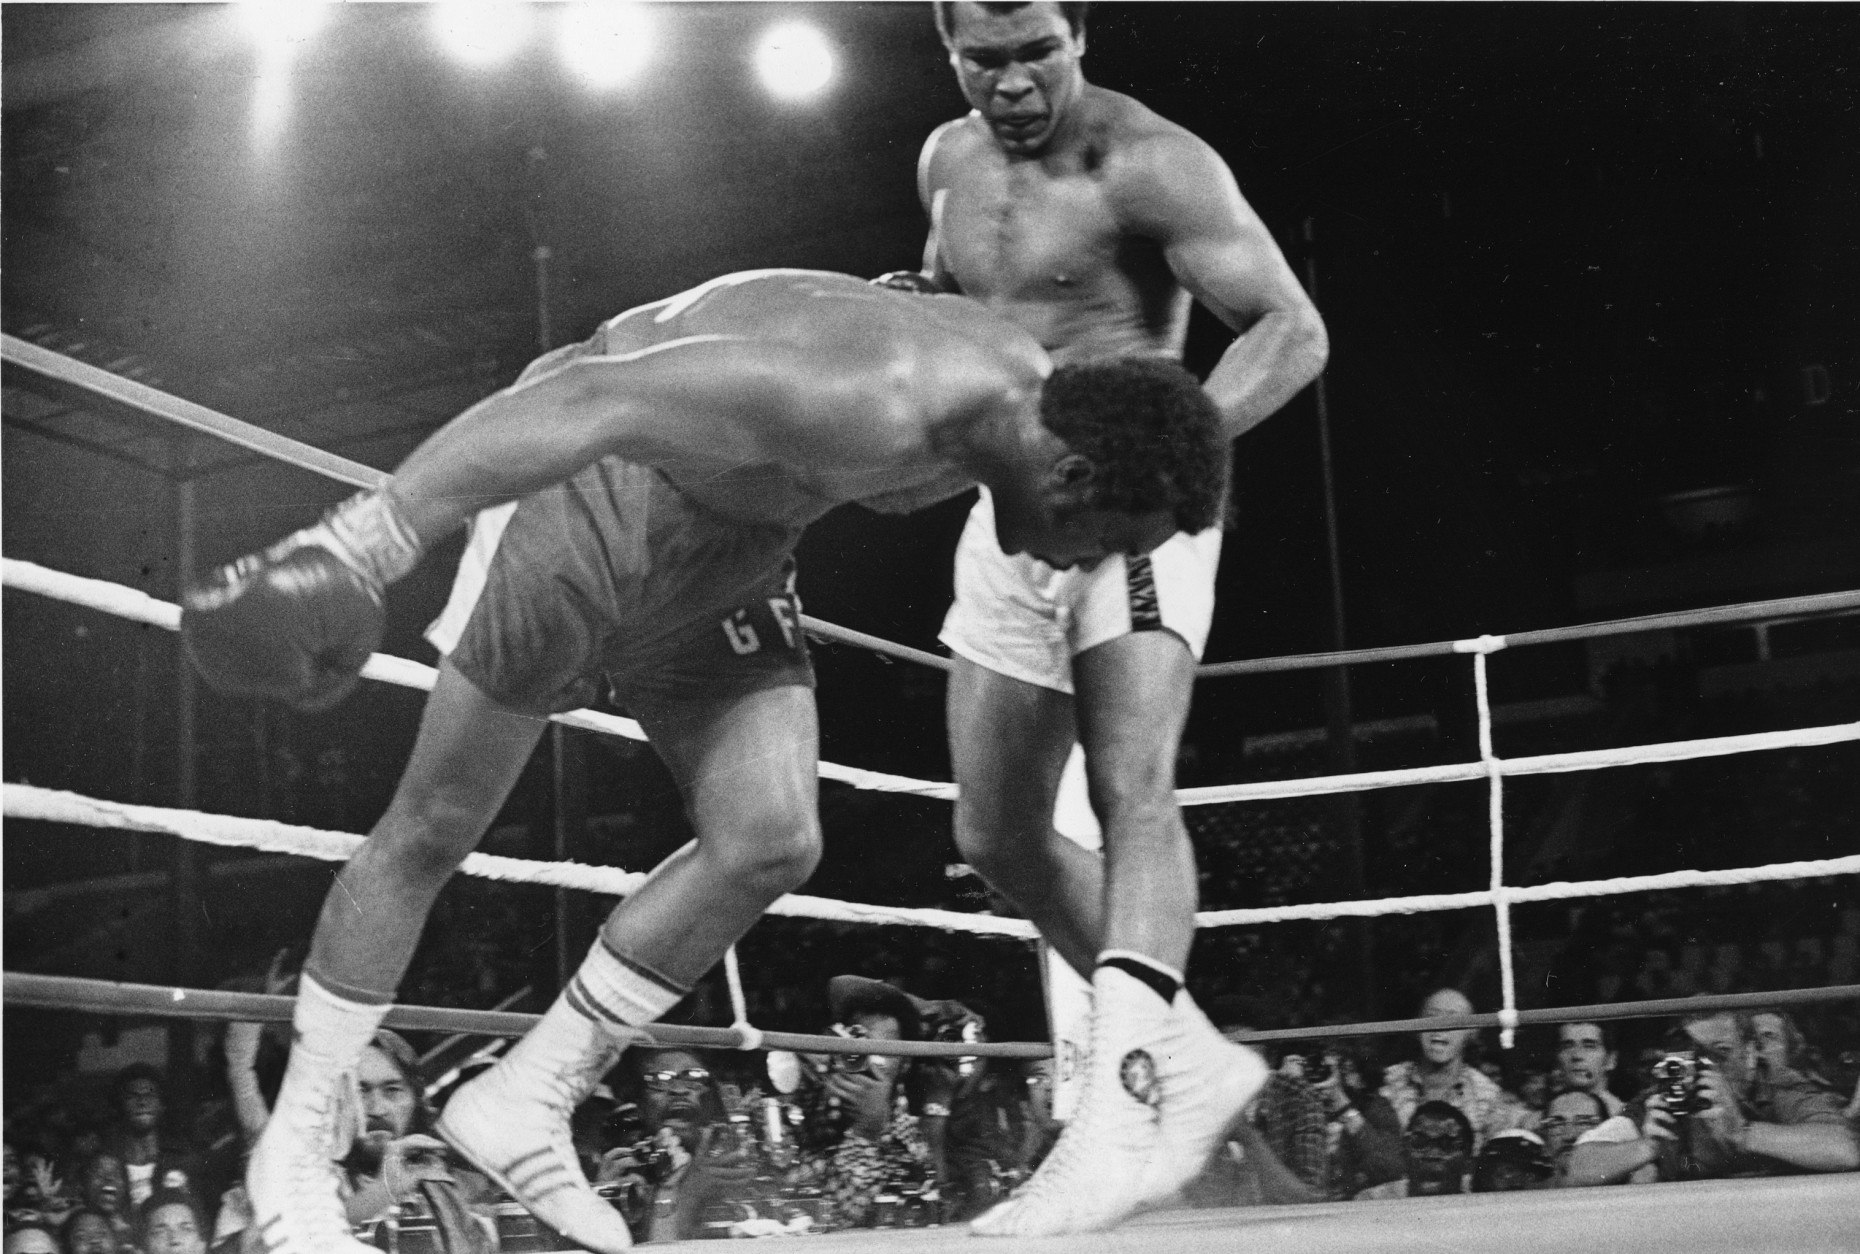 FILE - In this Oct. 30, 1974, file photo, challenger Muhammad Ali watches as defending world champion George Foreman goes down to the canvas in the eighth round of their WBA/WBC championship match in Kinshasa, Zaire. Ali, the magnificent heavyweight champion whose fast fists and irrepressible personality transcended sports and captivated the world, has died according to a statement released by his family Friday, June 3, 2016. He was 74. (AP Photo/File)